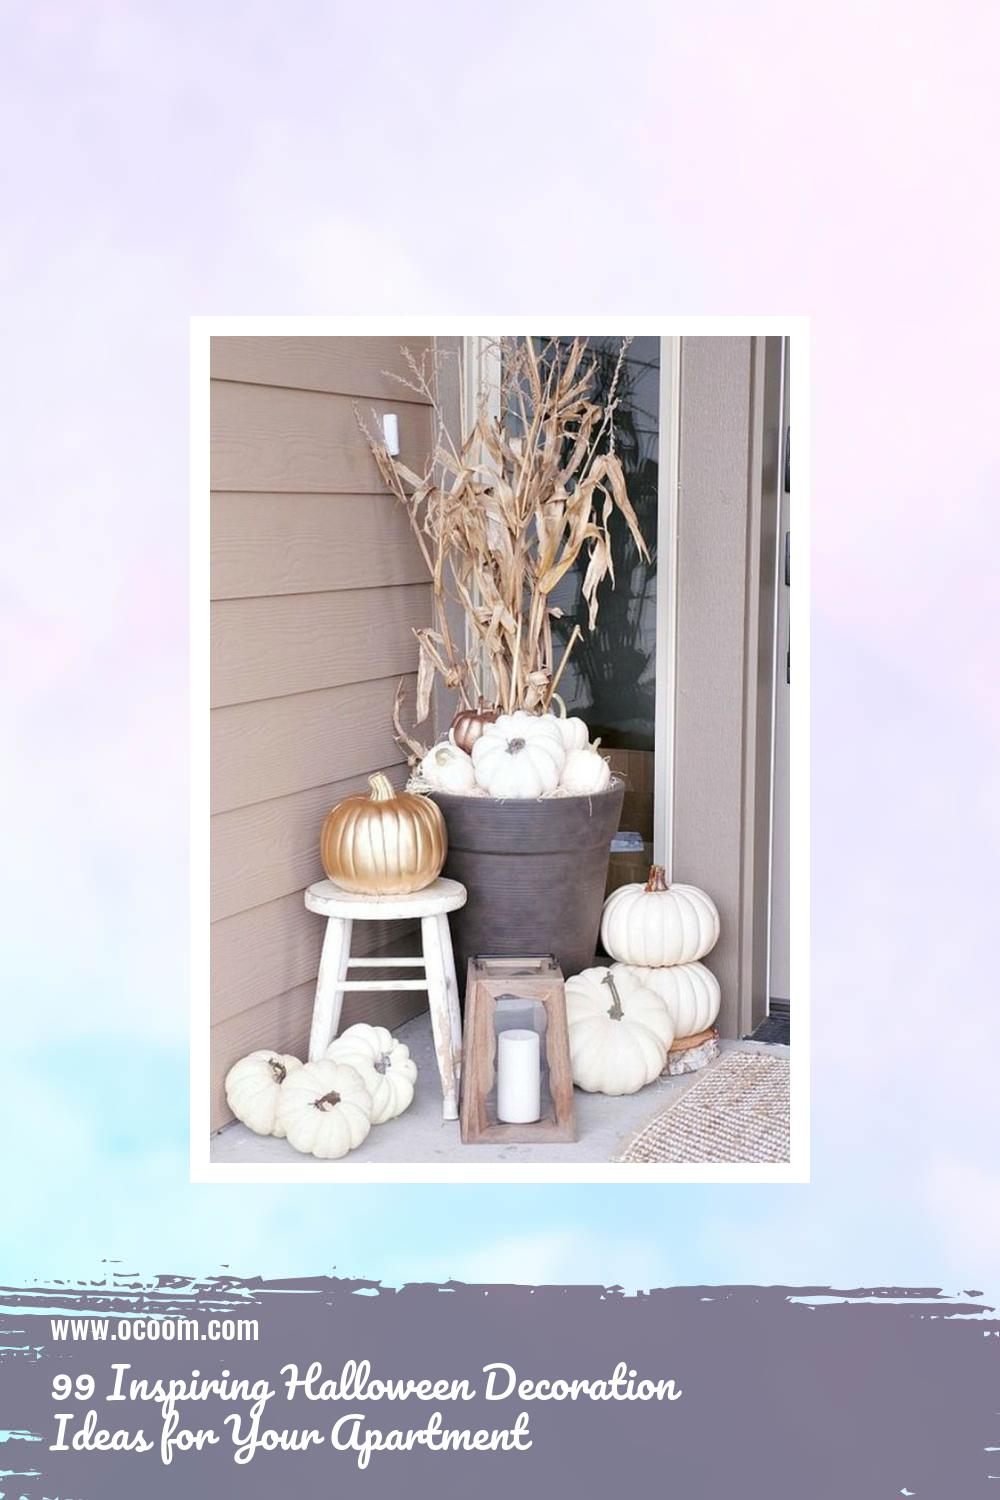 99 Inspiring Halloween Decoration Ideas for Your Apartment 43